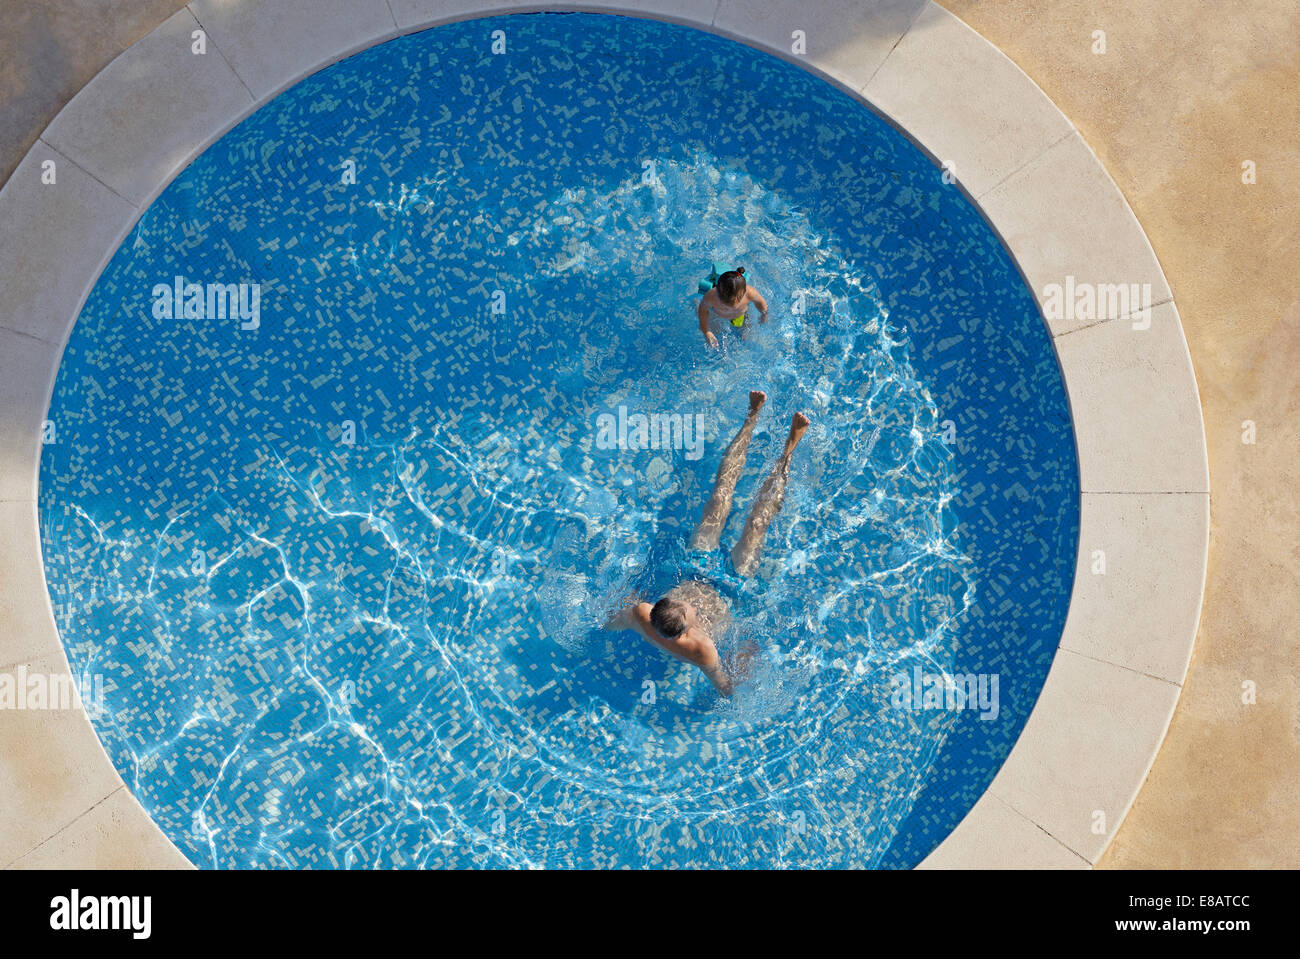 Overhead view of man and toddler daughter in swimming pool - Stock Image